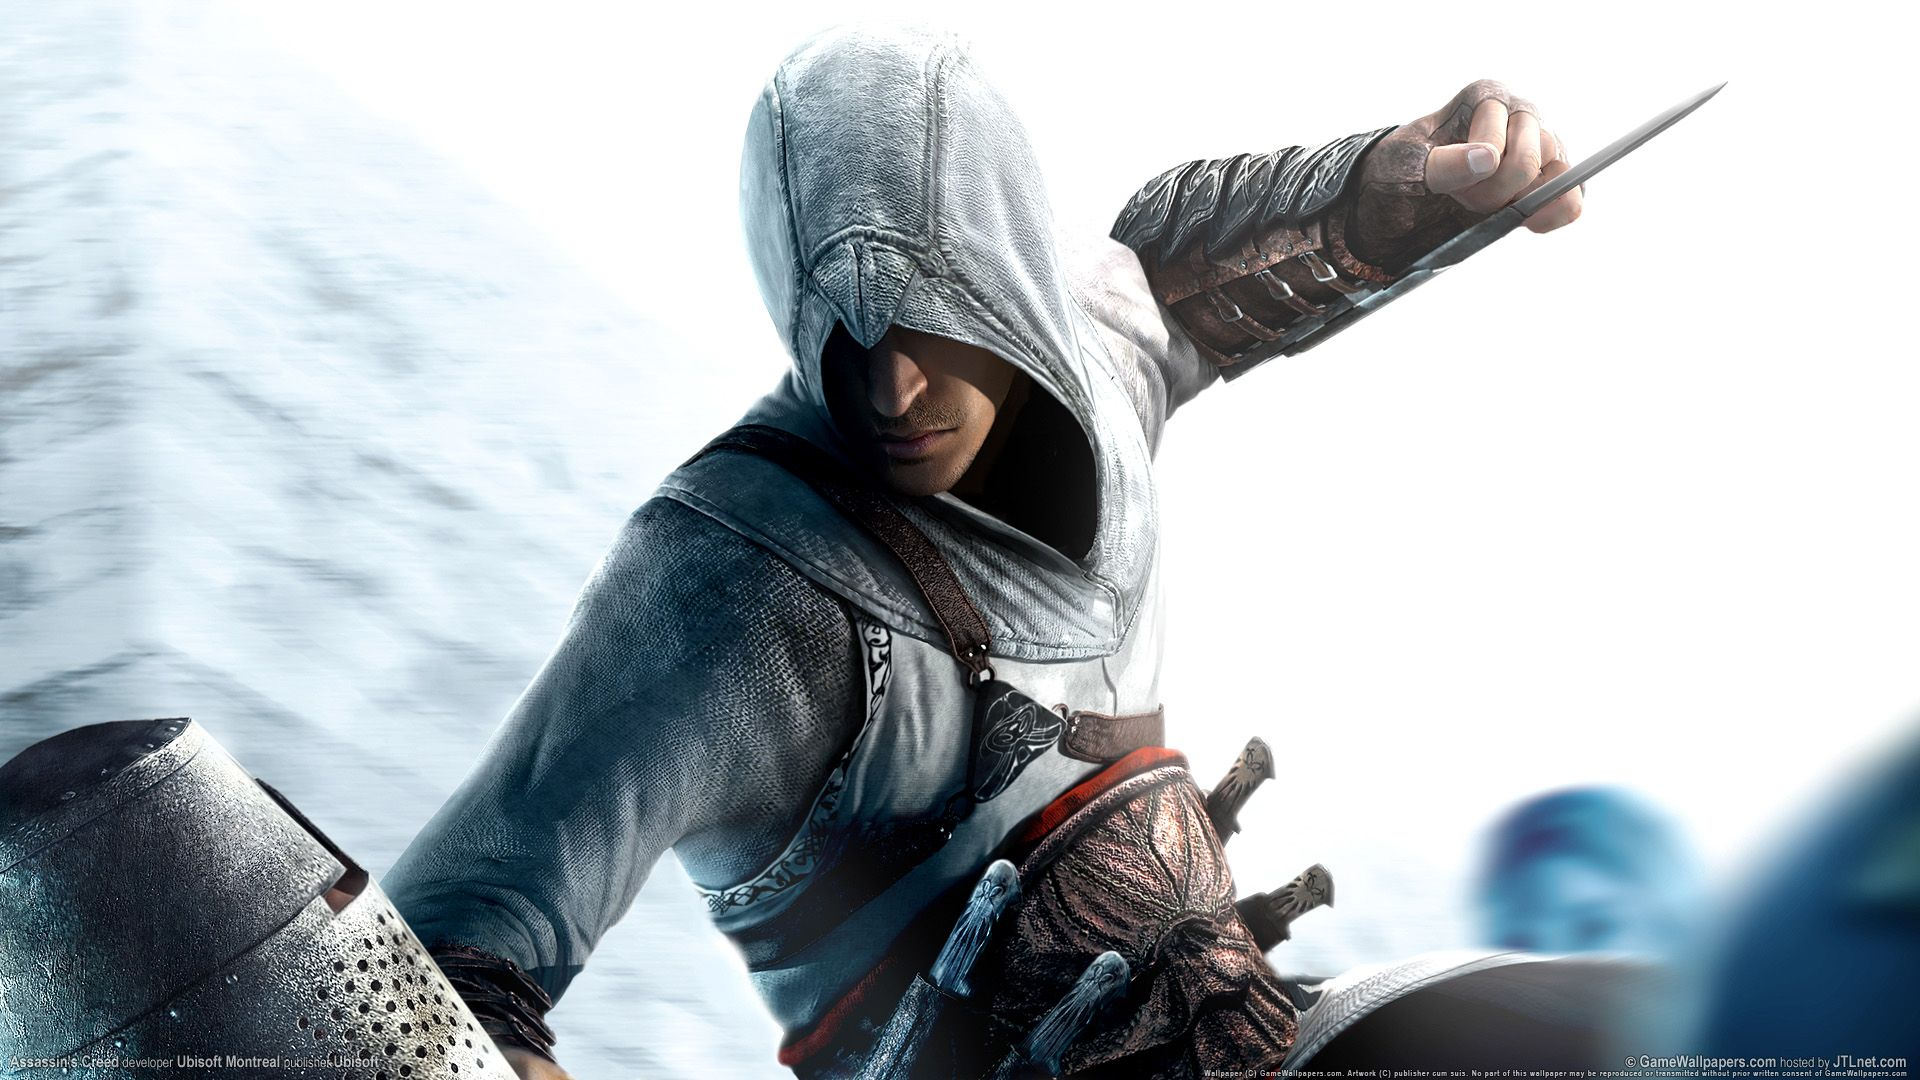 Assassins Creed Assassins Creed Movie Assassins Creed Game Assassins Creed 1